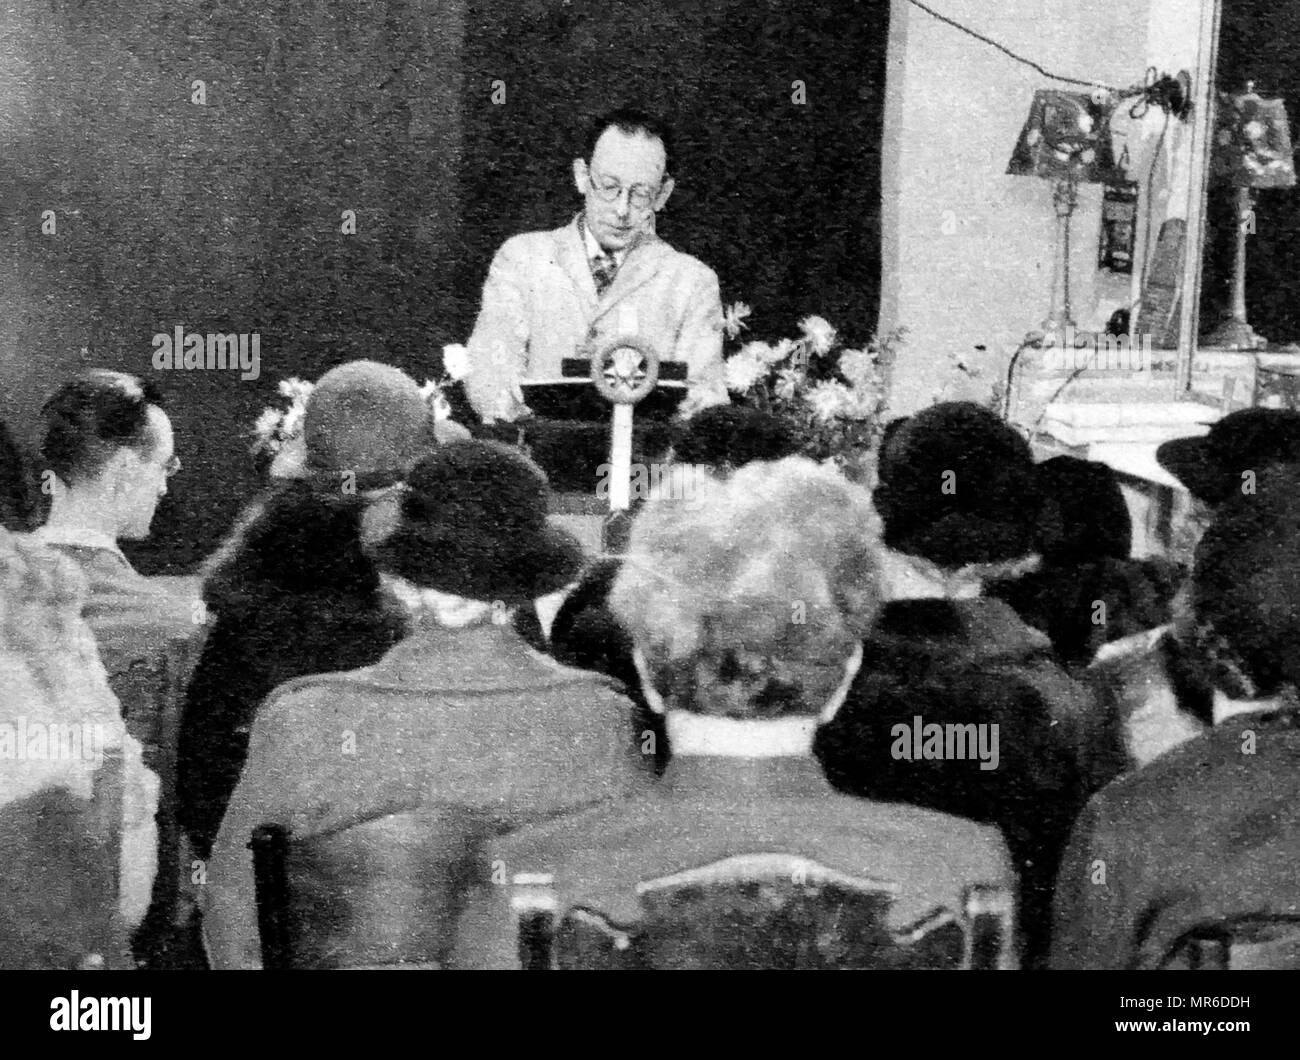 The Psychic spiritualist Medium, Horace S. Hambling in the 1930's - Stock Image